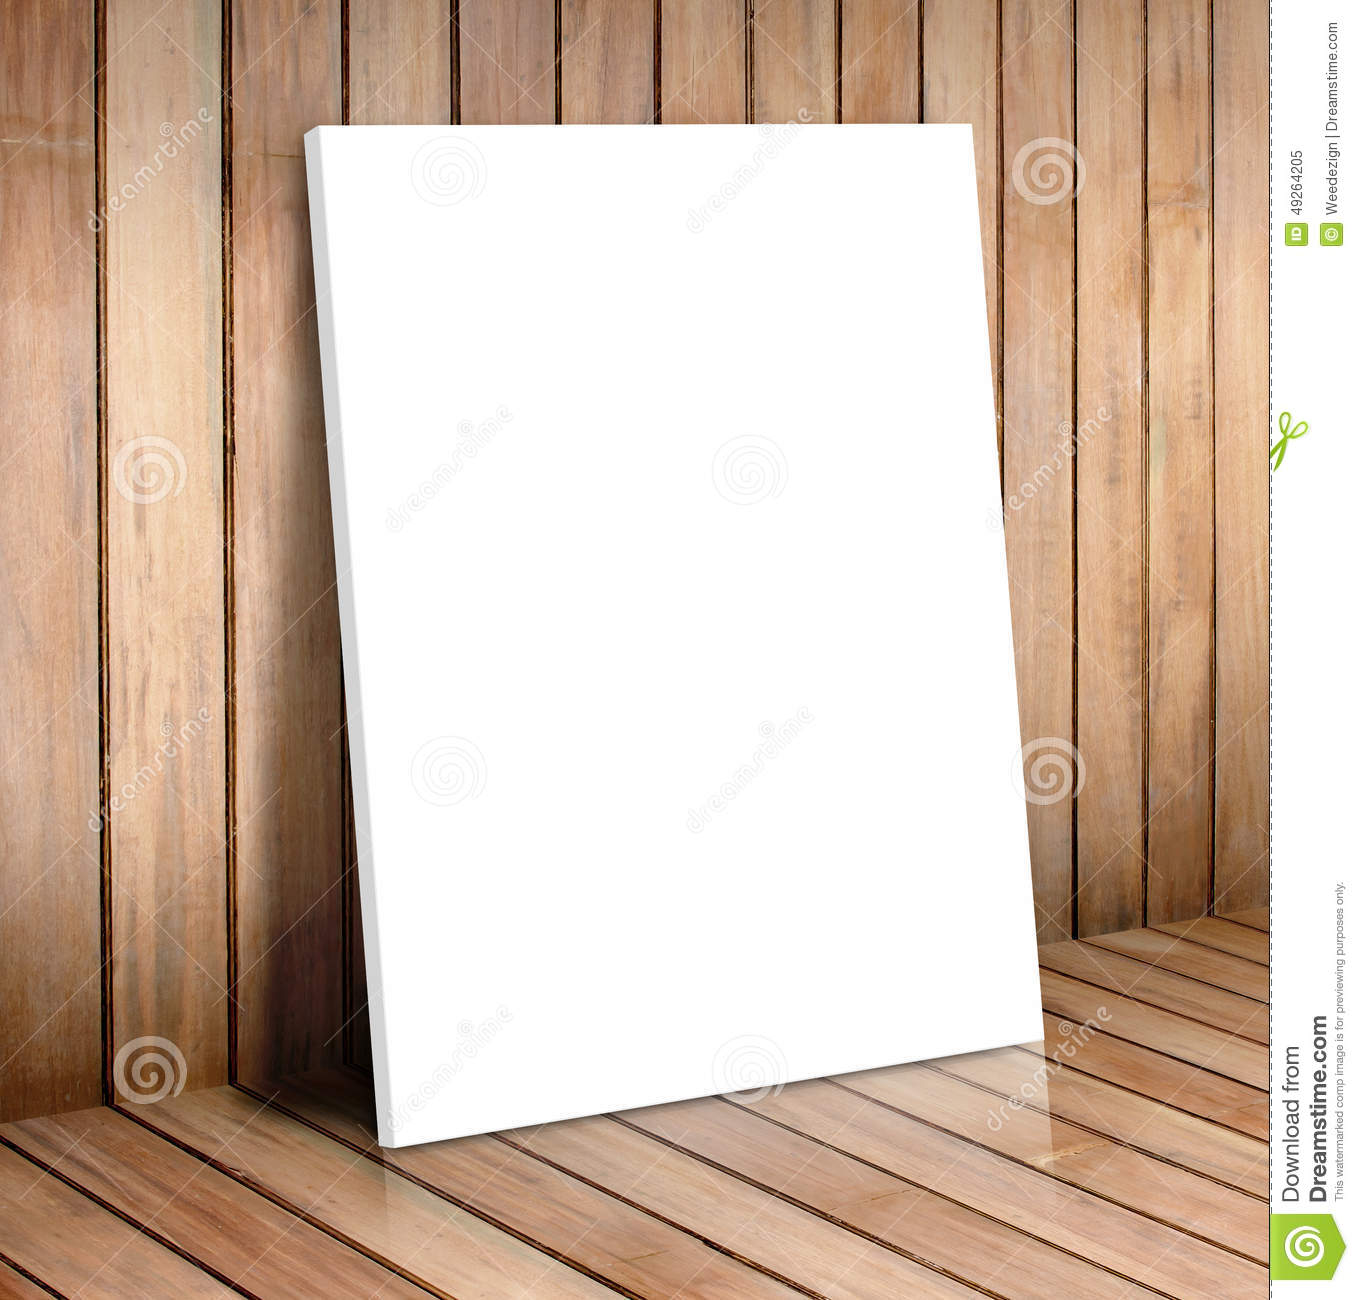 white poster frame in wooden roommock up for your content